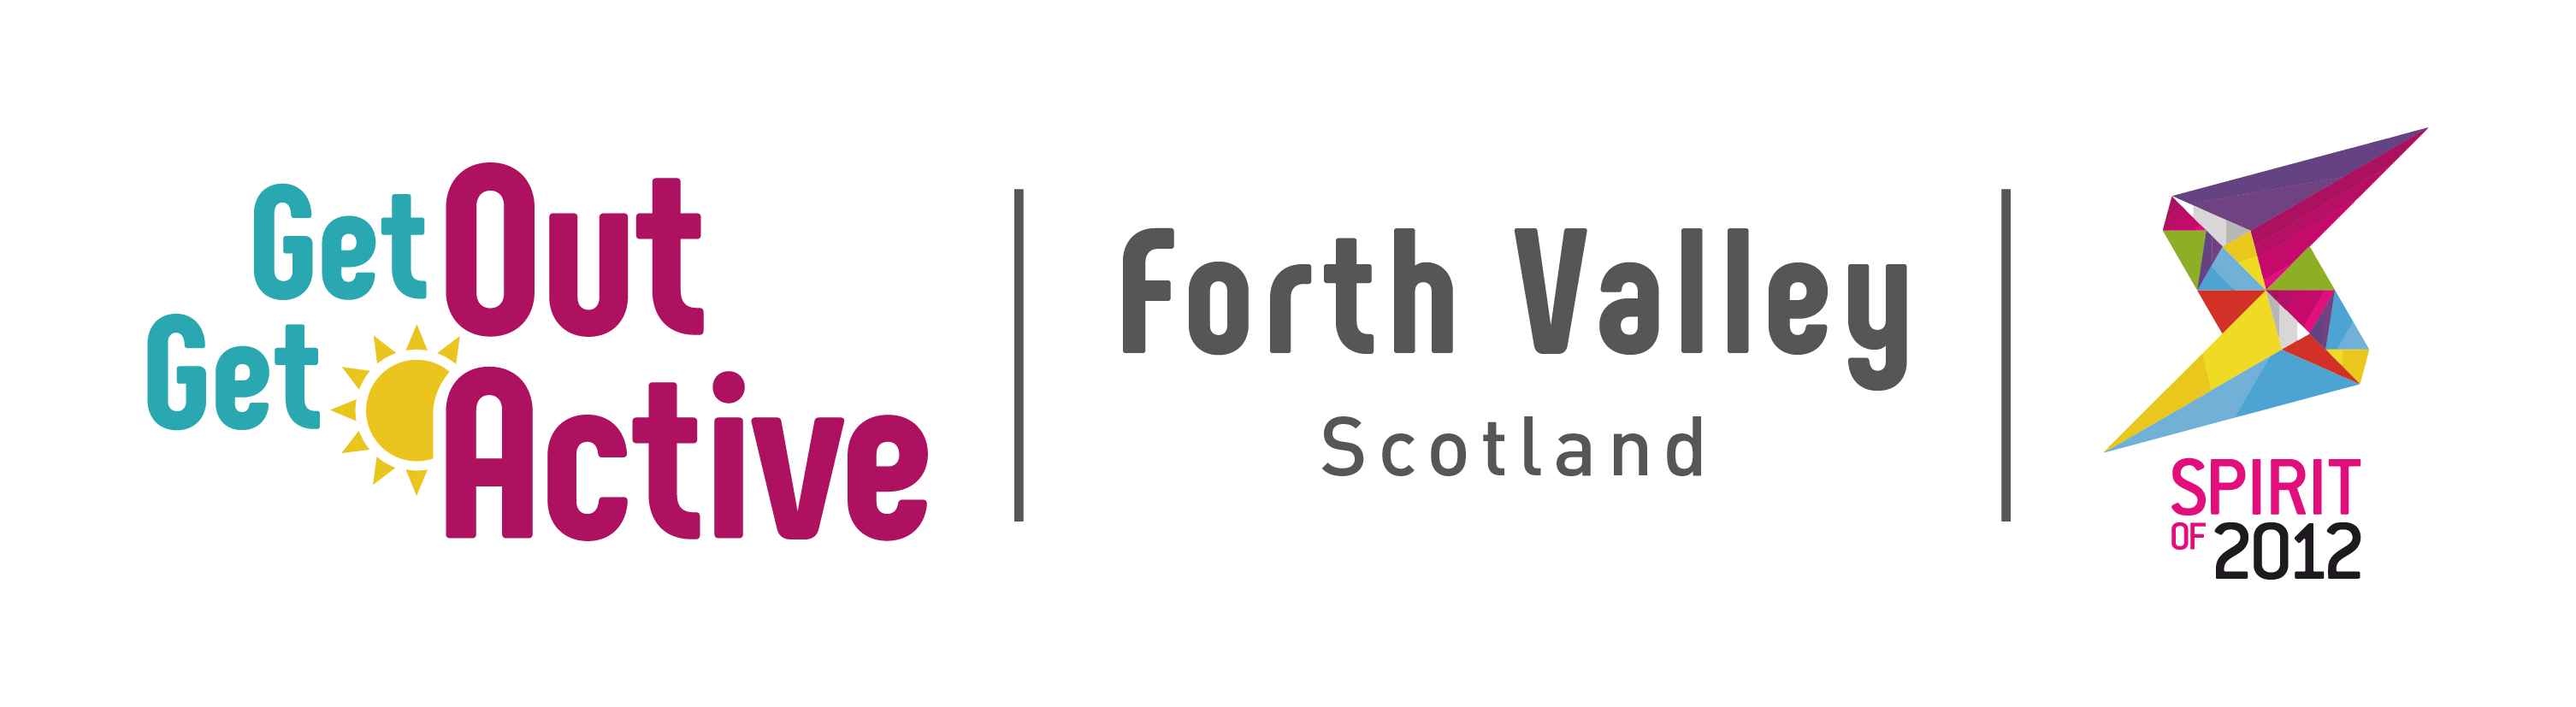 Get Out and Get Active Forth Valley Scotland